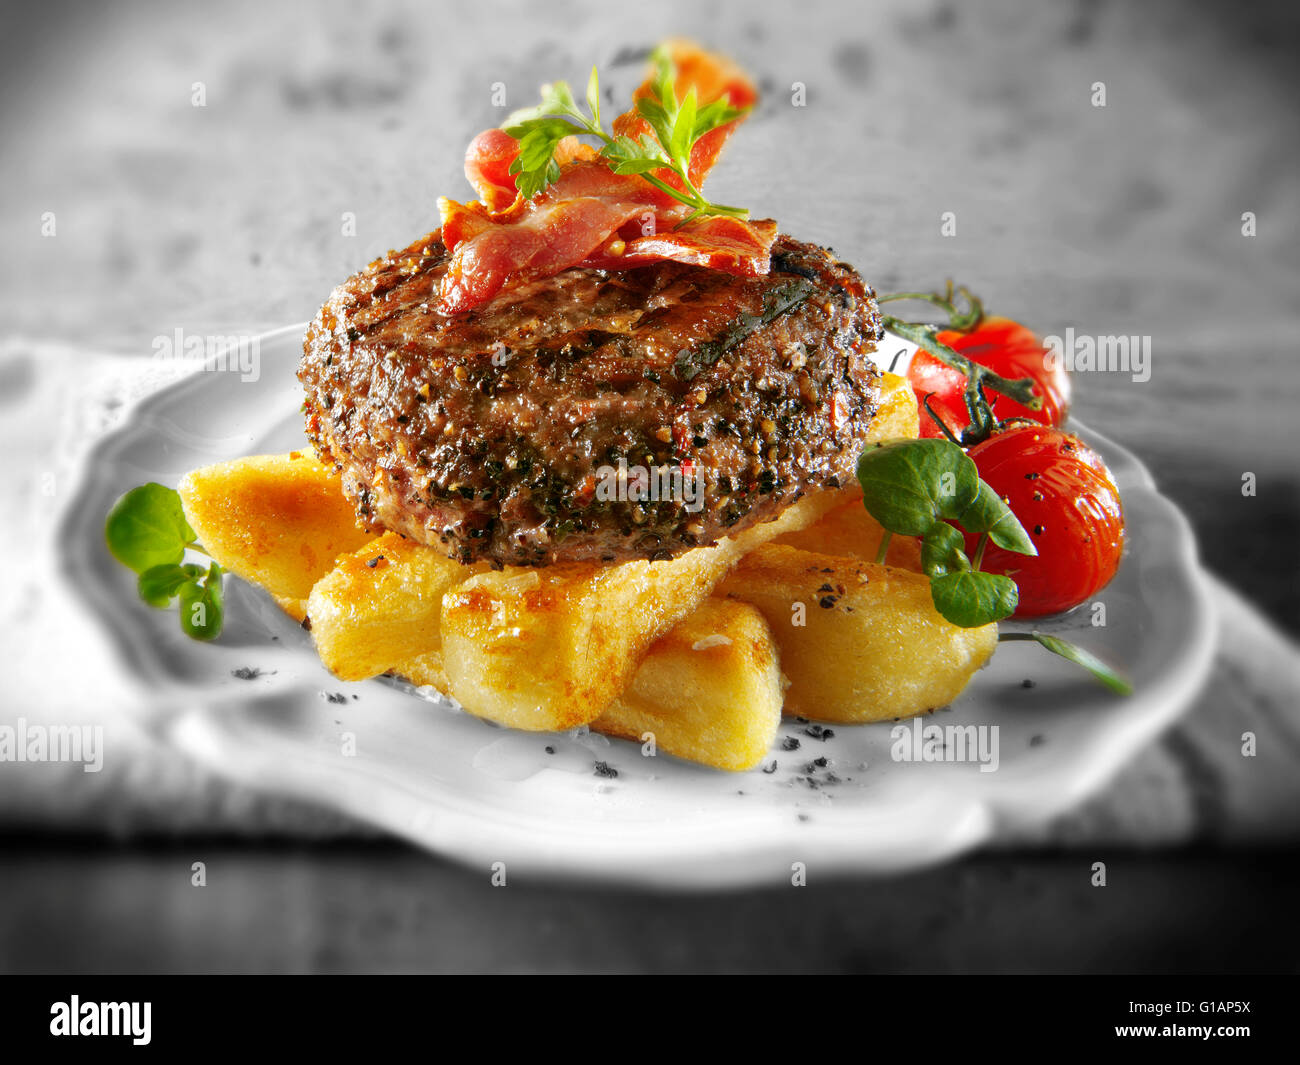 Cooked Peppered beef burger or hamburger with bacon and chunky chips - Stock Image